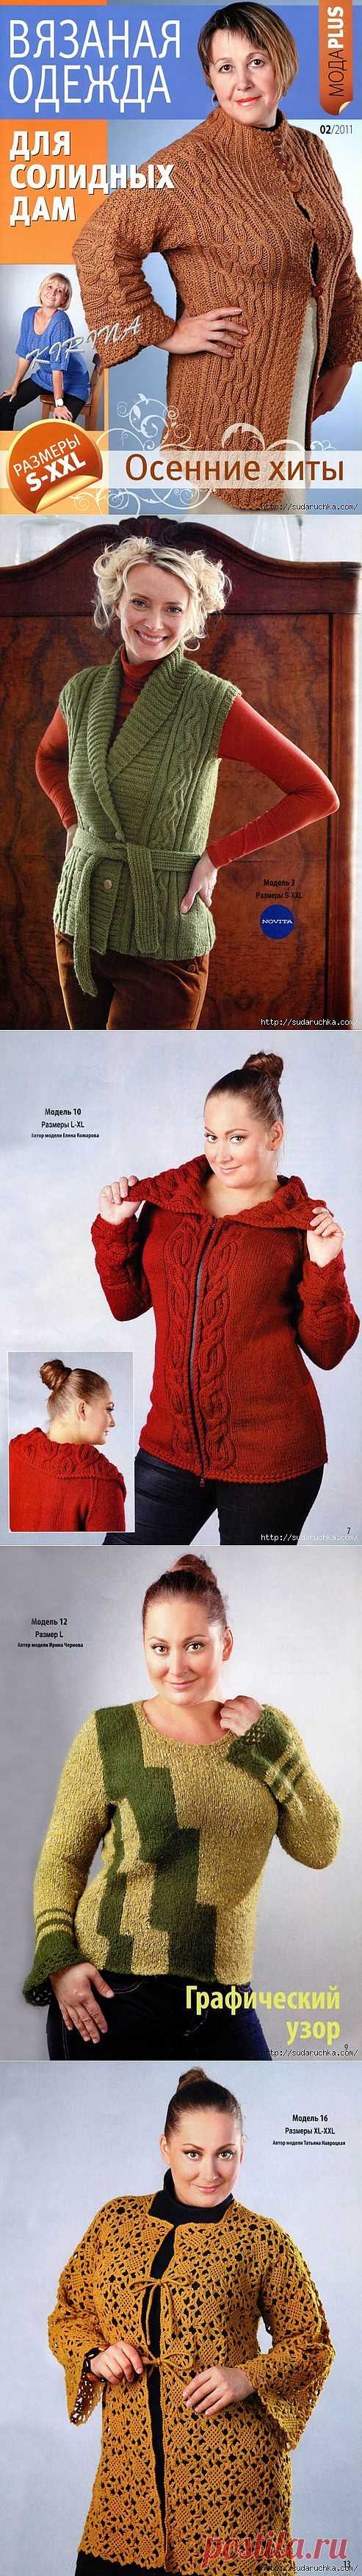 """""""Вязаная clothes for solid ladies - autumn hits """". The magazine on knitting."""